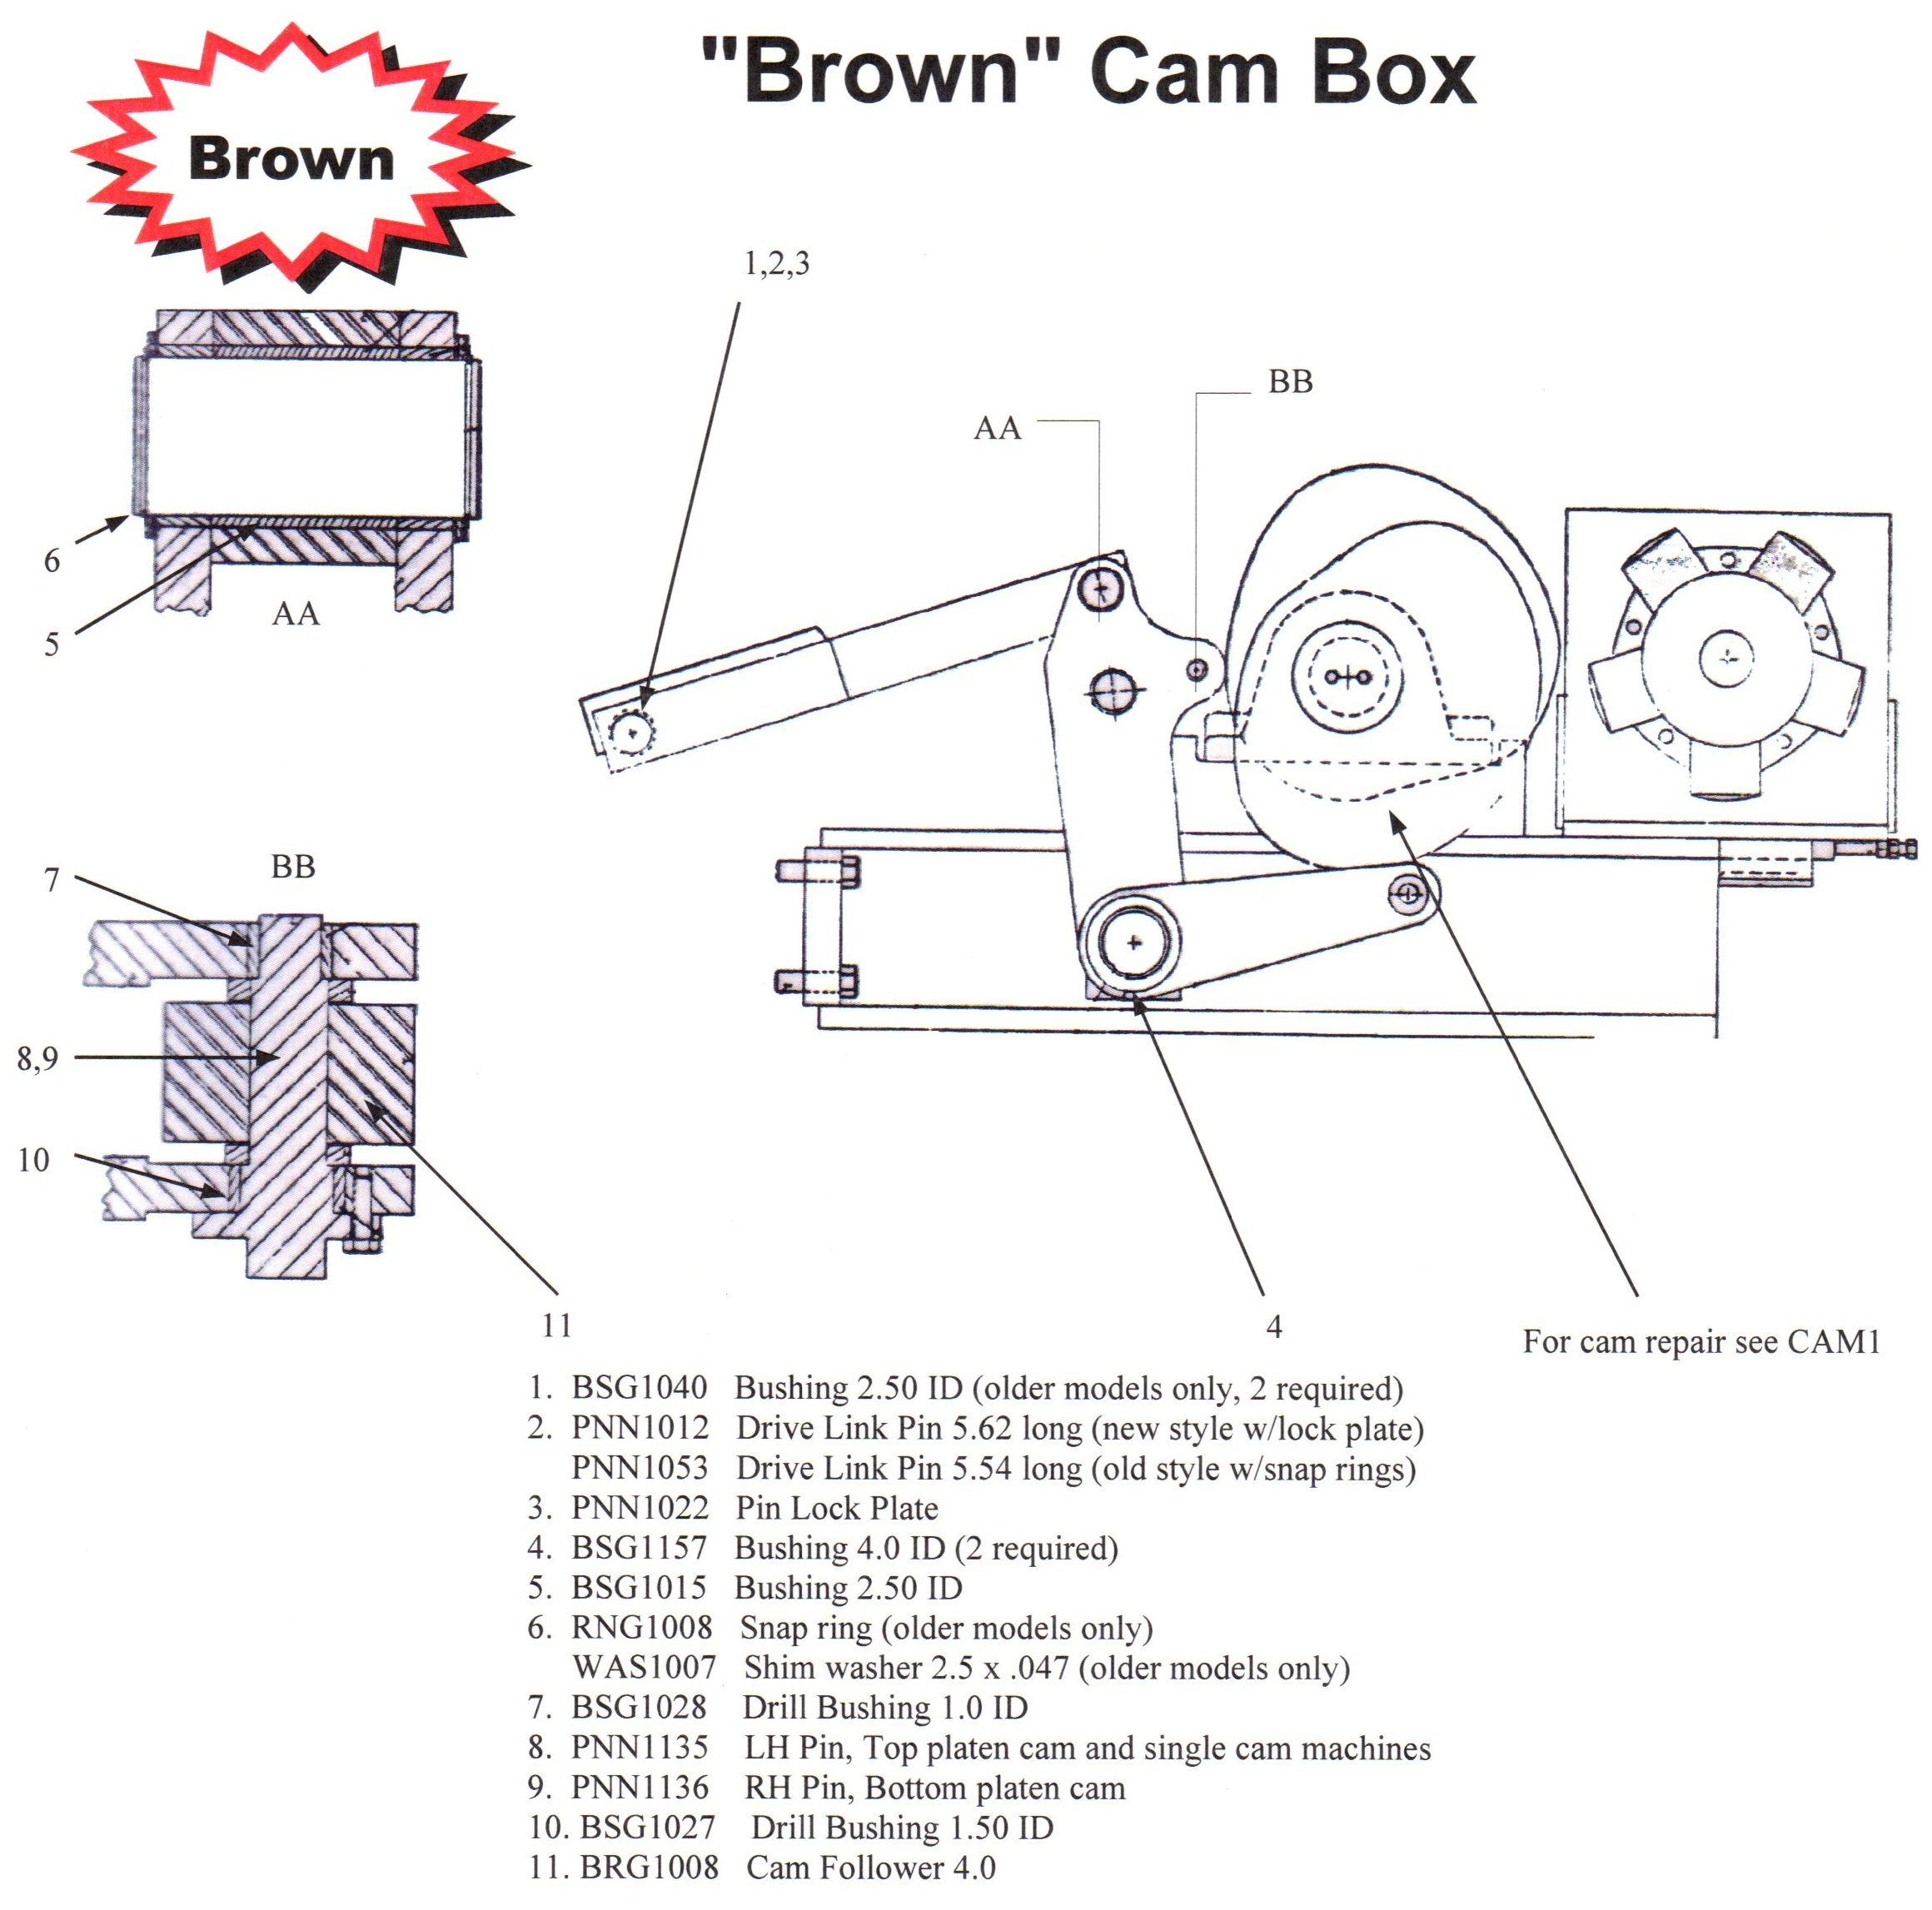 Brown Cam Box